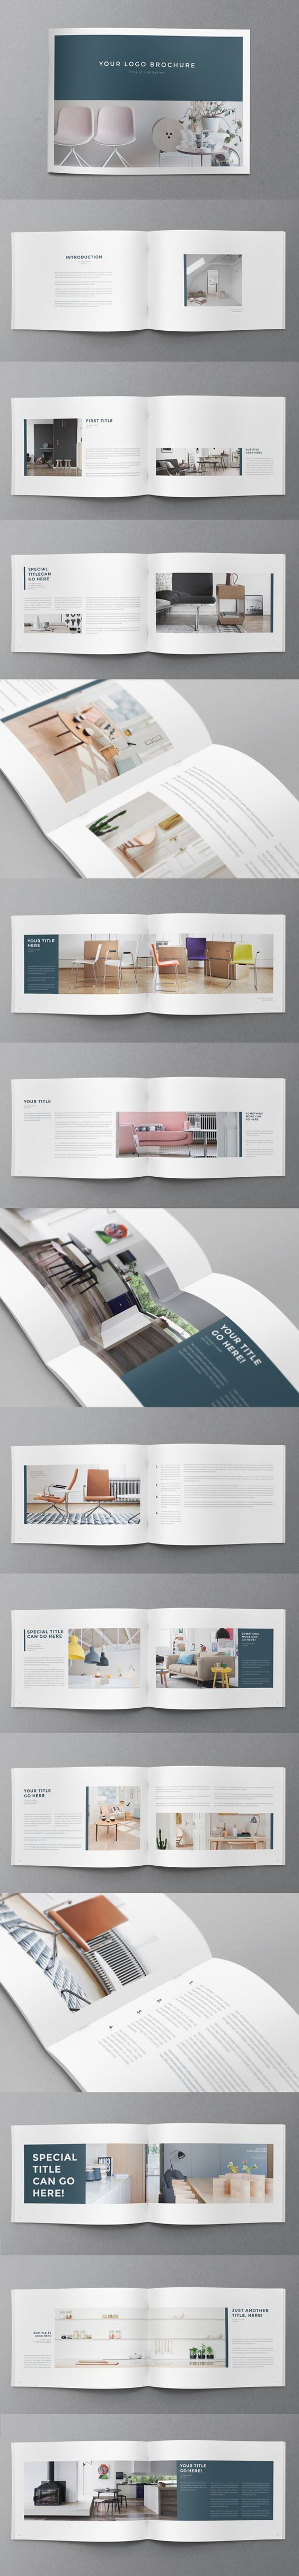 Interior Design Minimal Brochure